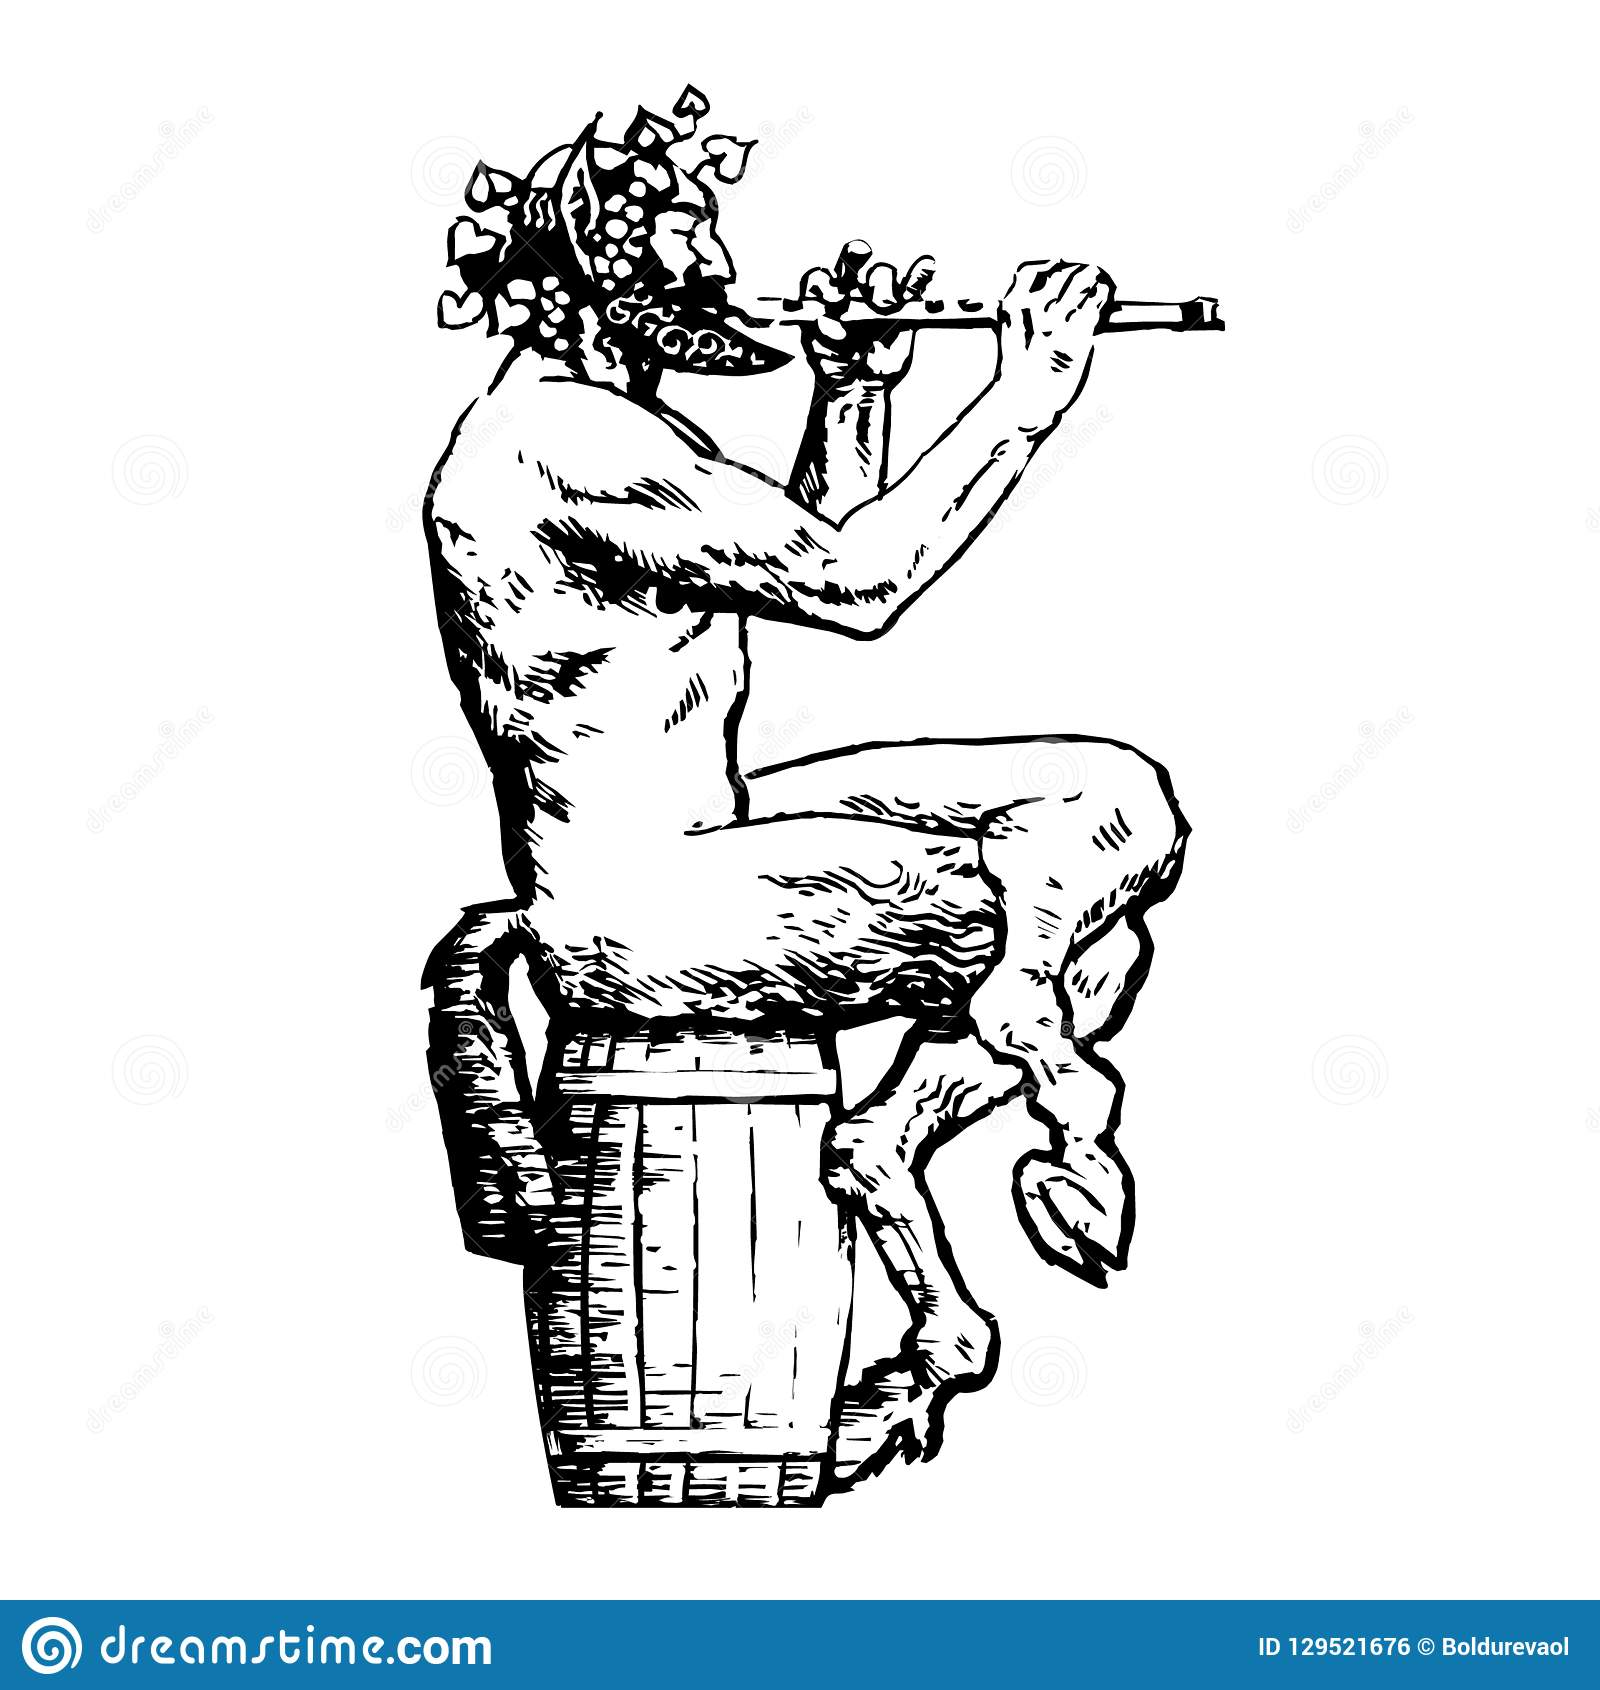 Satyr sitting on wooden barrel and playing flute. Design elements for wine list, menu card, tattoo, Greece or Italy